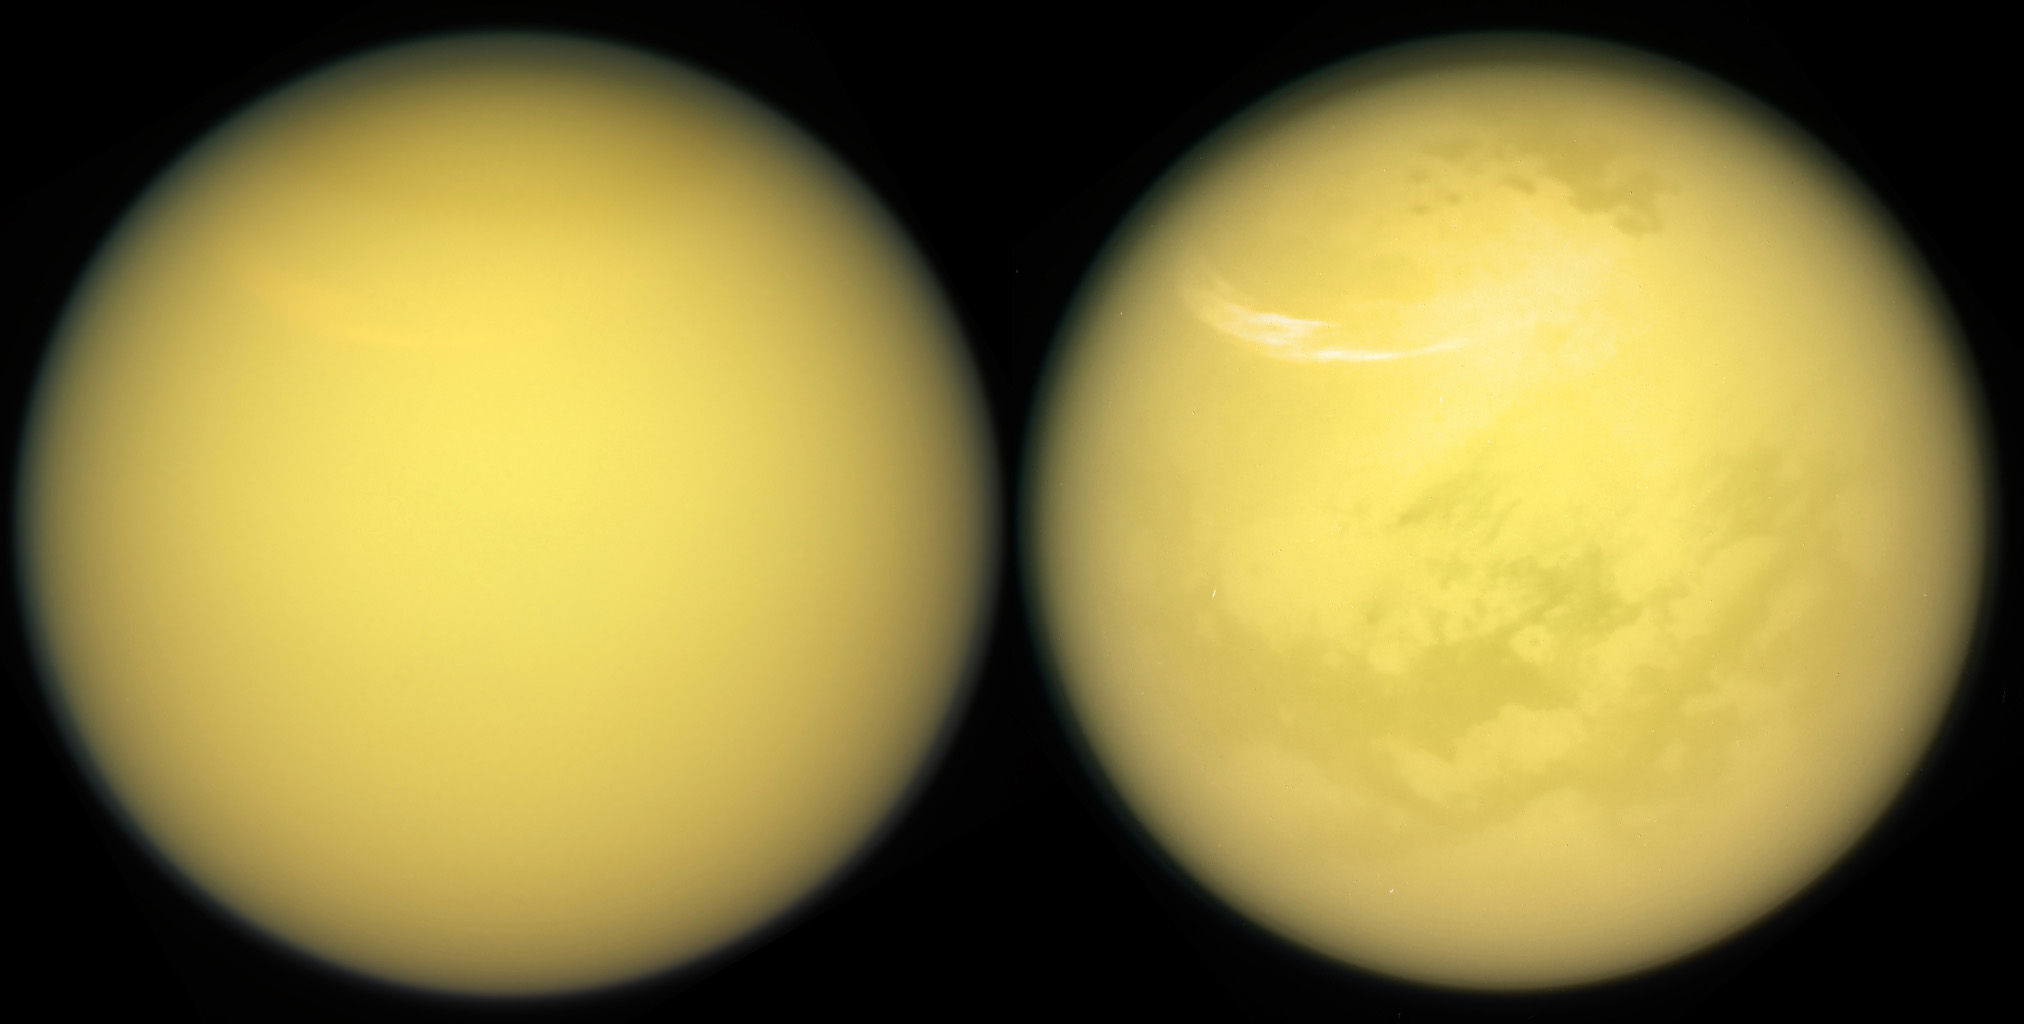 These two views of Saturn's moon Titan exemplify how NASA's Cassini spacecraft has revealed the surface of this fascinating world.